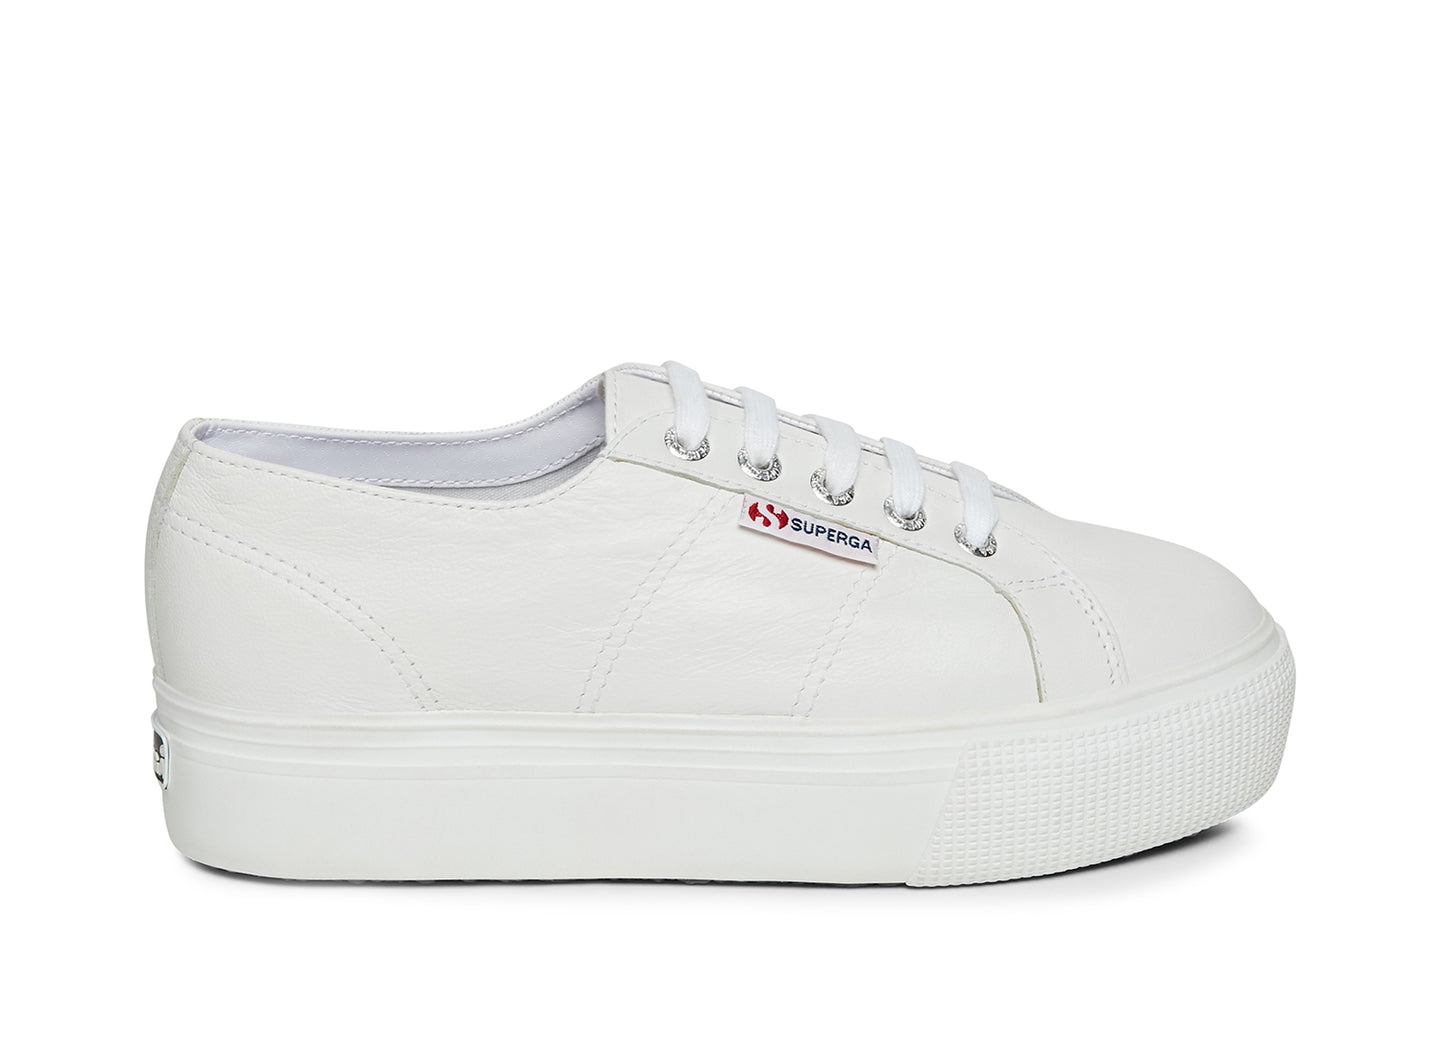 2790 - NAPPA WHITE LEATHER - Women's